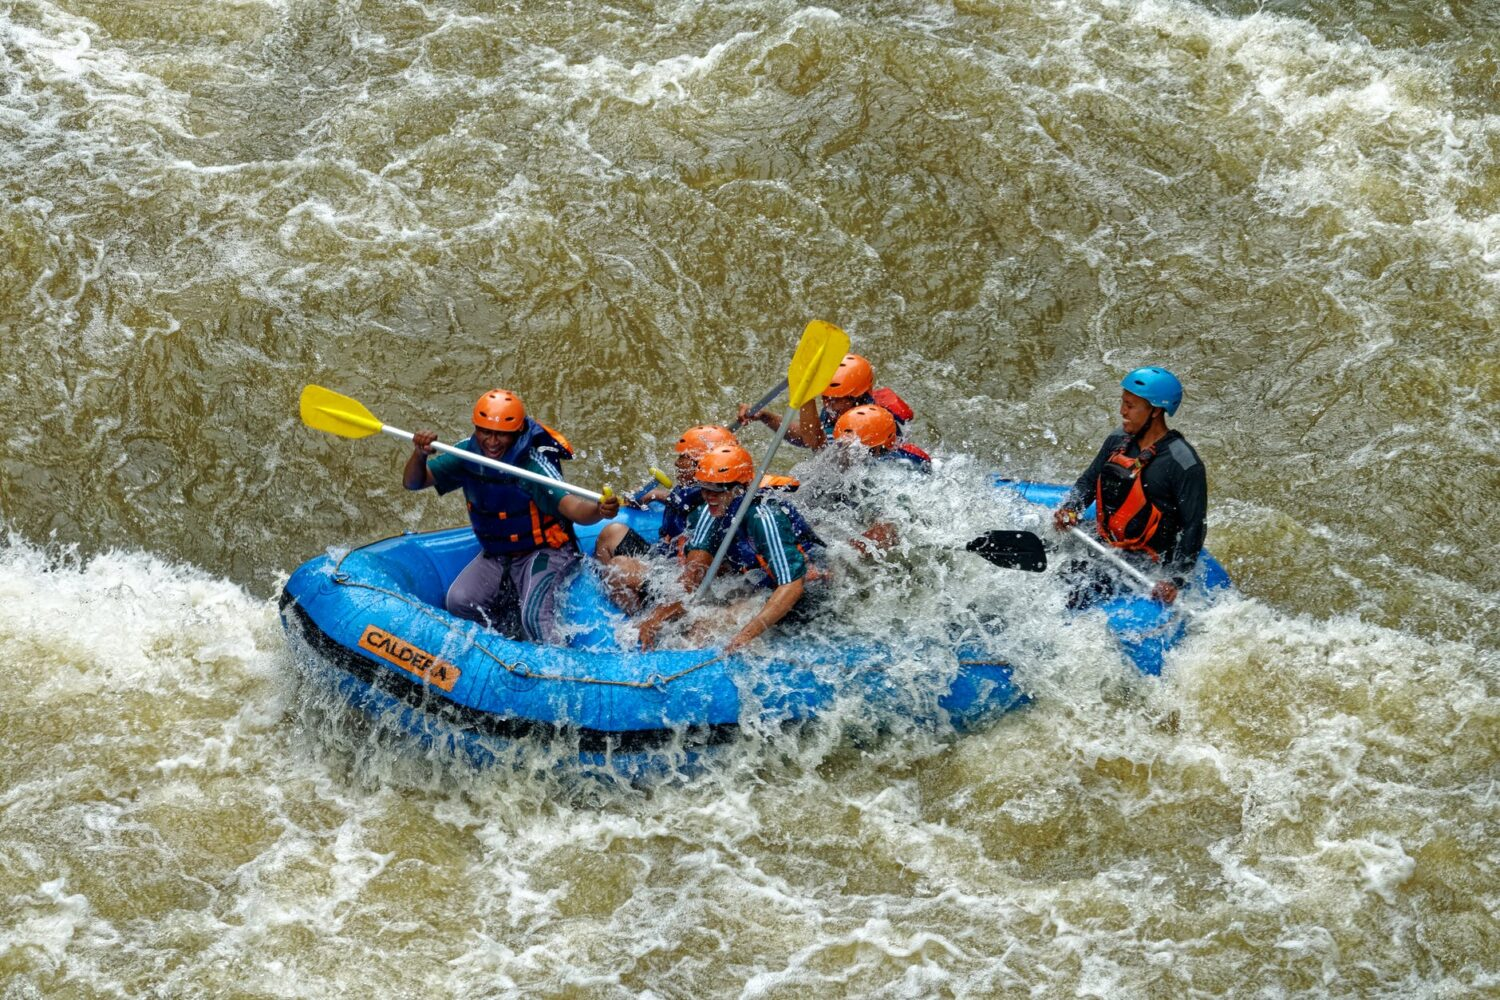 group of men paddling while inside inflatable boat